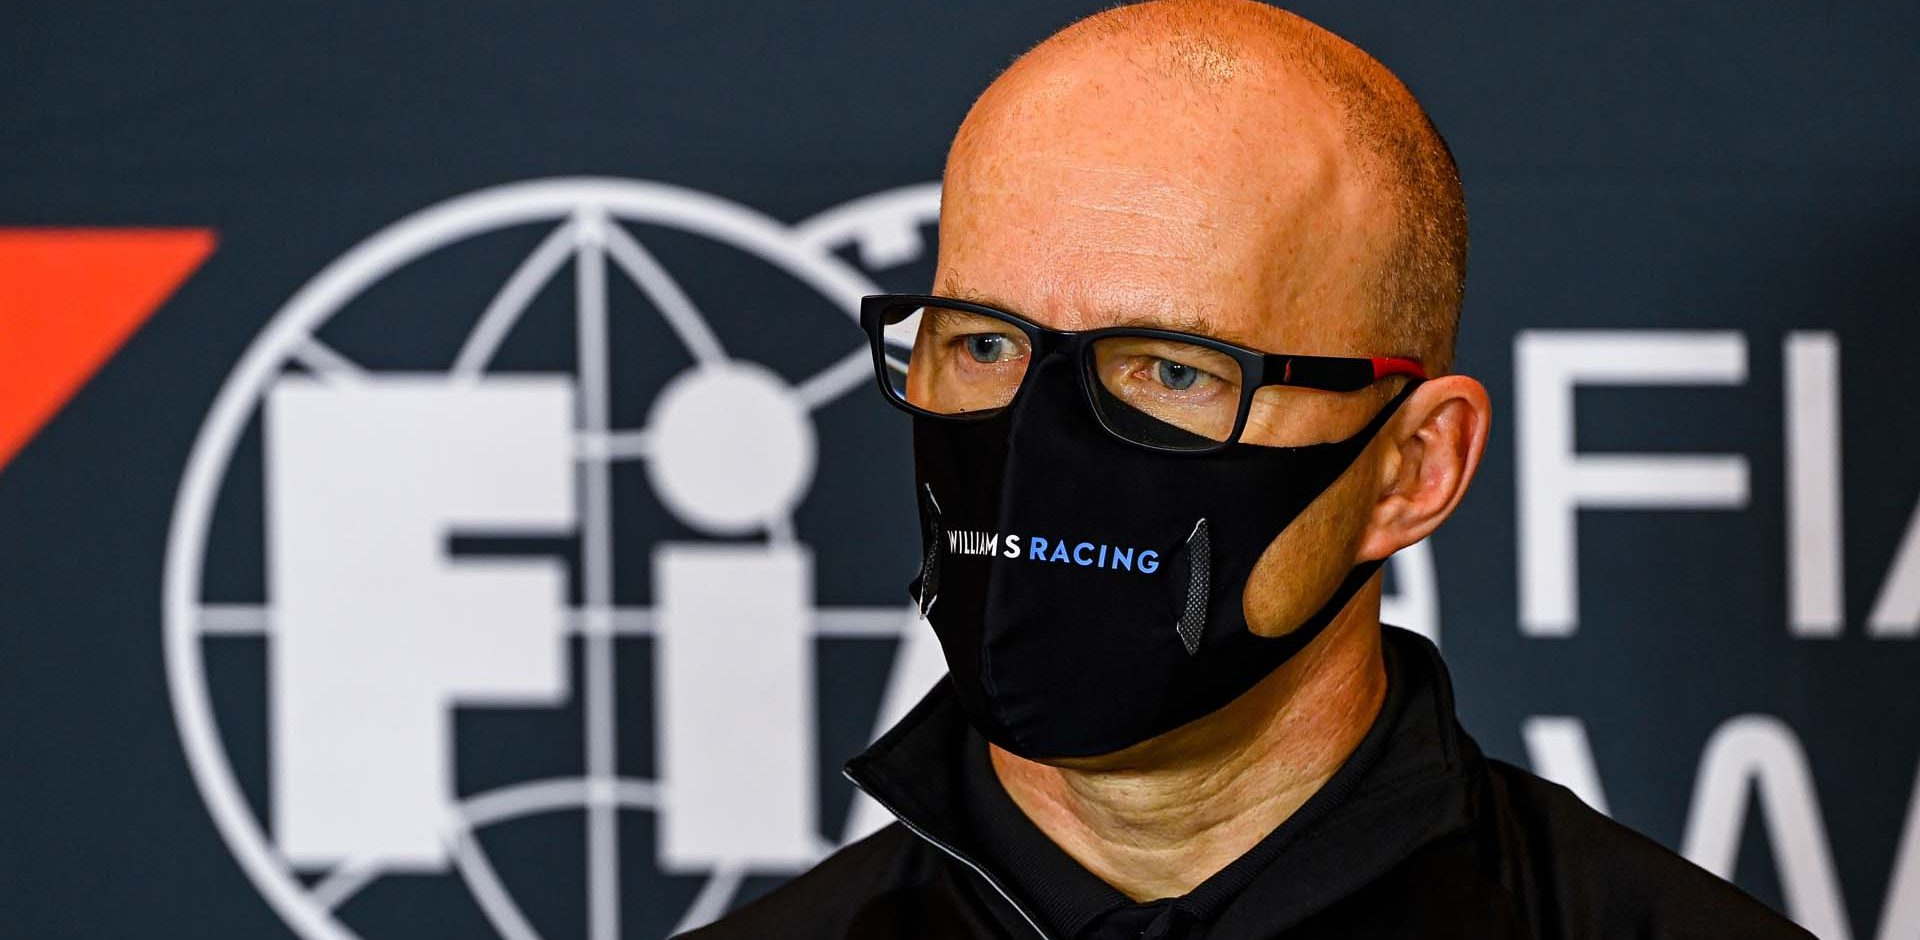 Simon Roberts (GBR) Williams Racing F1 Acting Team Principal in the FIA Press Conference. Emilia Romagna Grand Prix, Friday 29th October 2020. Imola, Italy. FIA Pool Image for Editorial Use Only